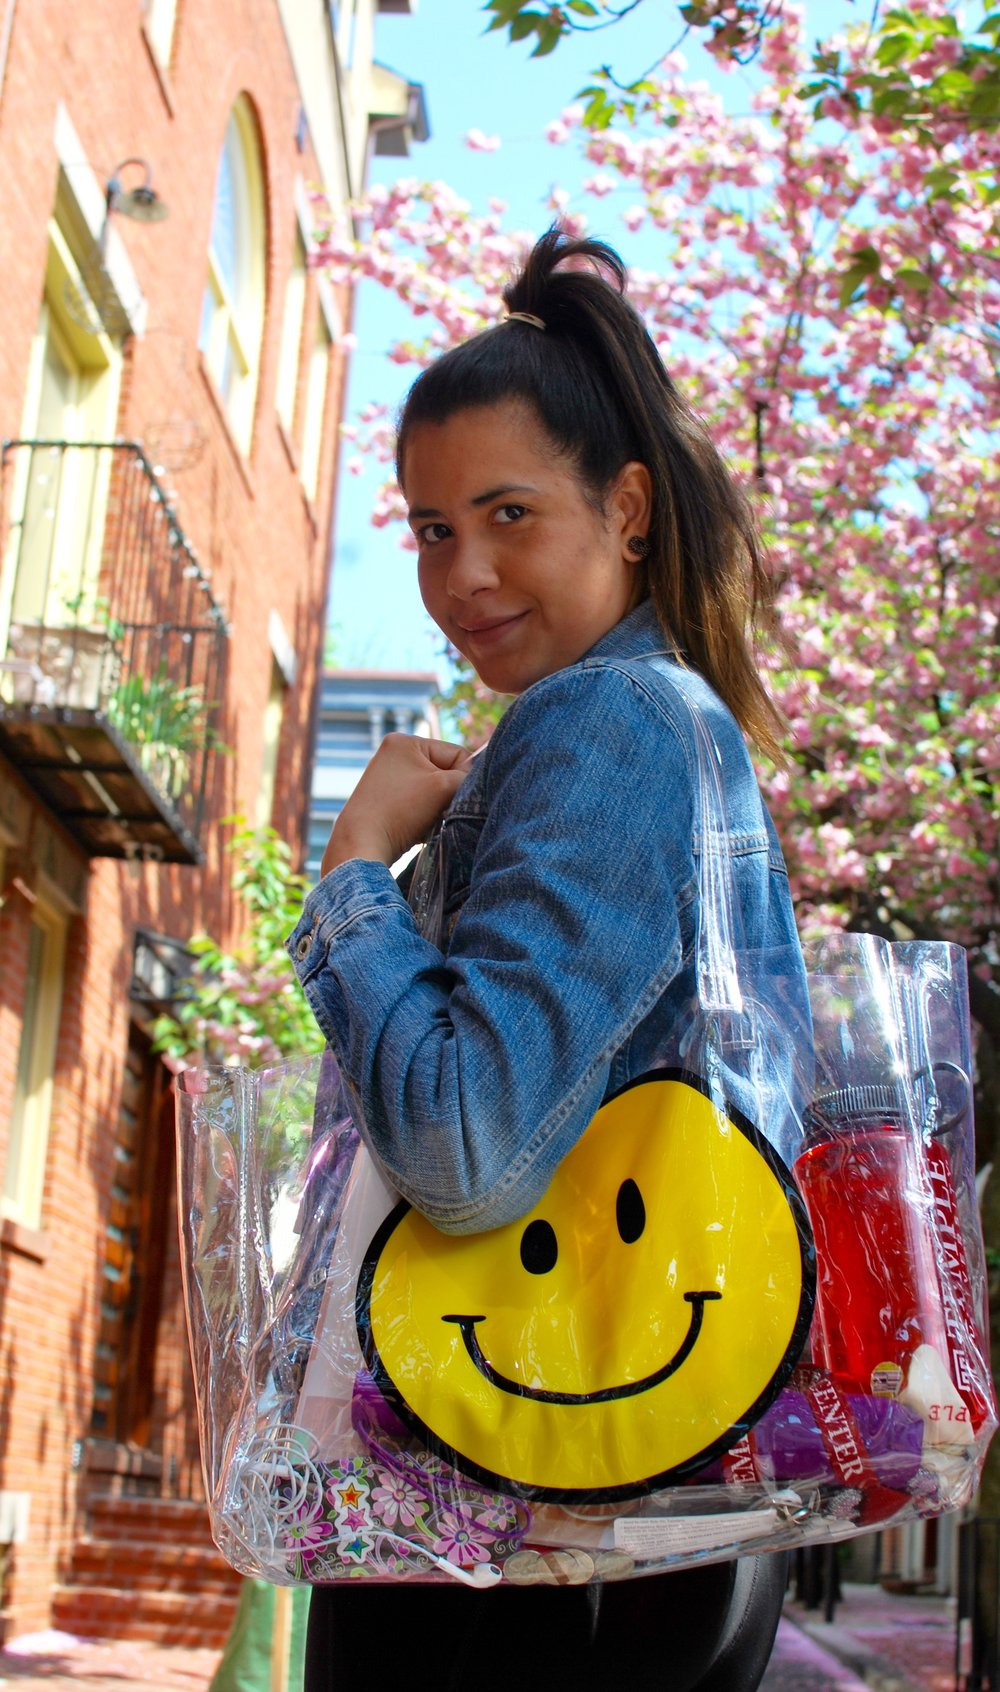 Carmen accessories denim with a smile